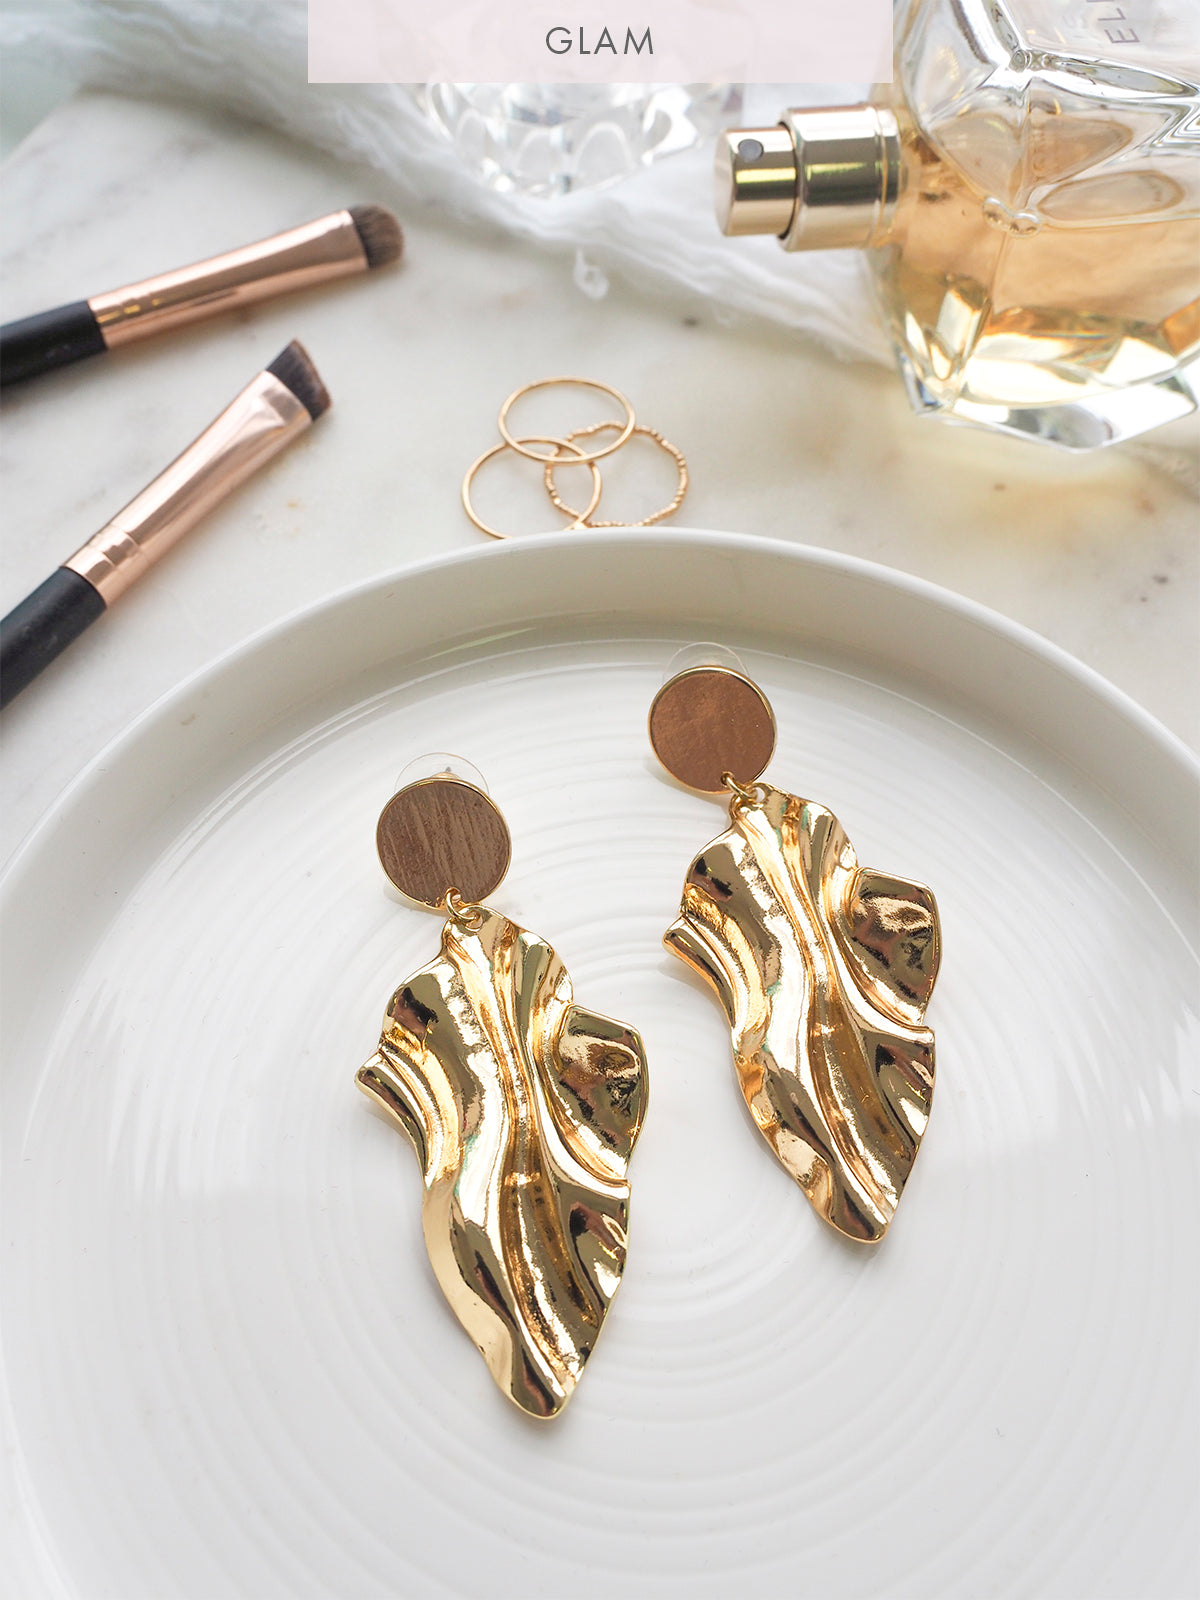 CALI GLAMOUR LUXE EARRINGS